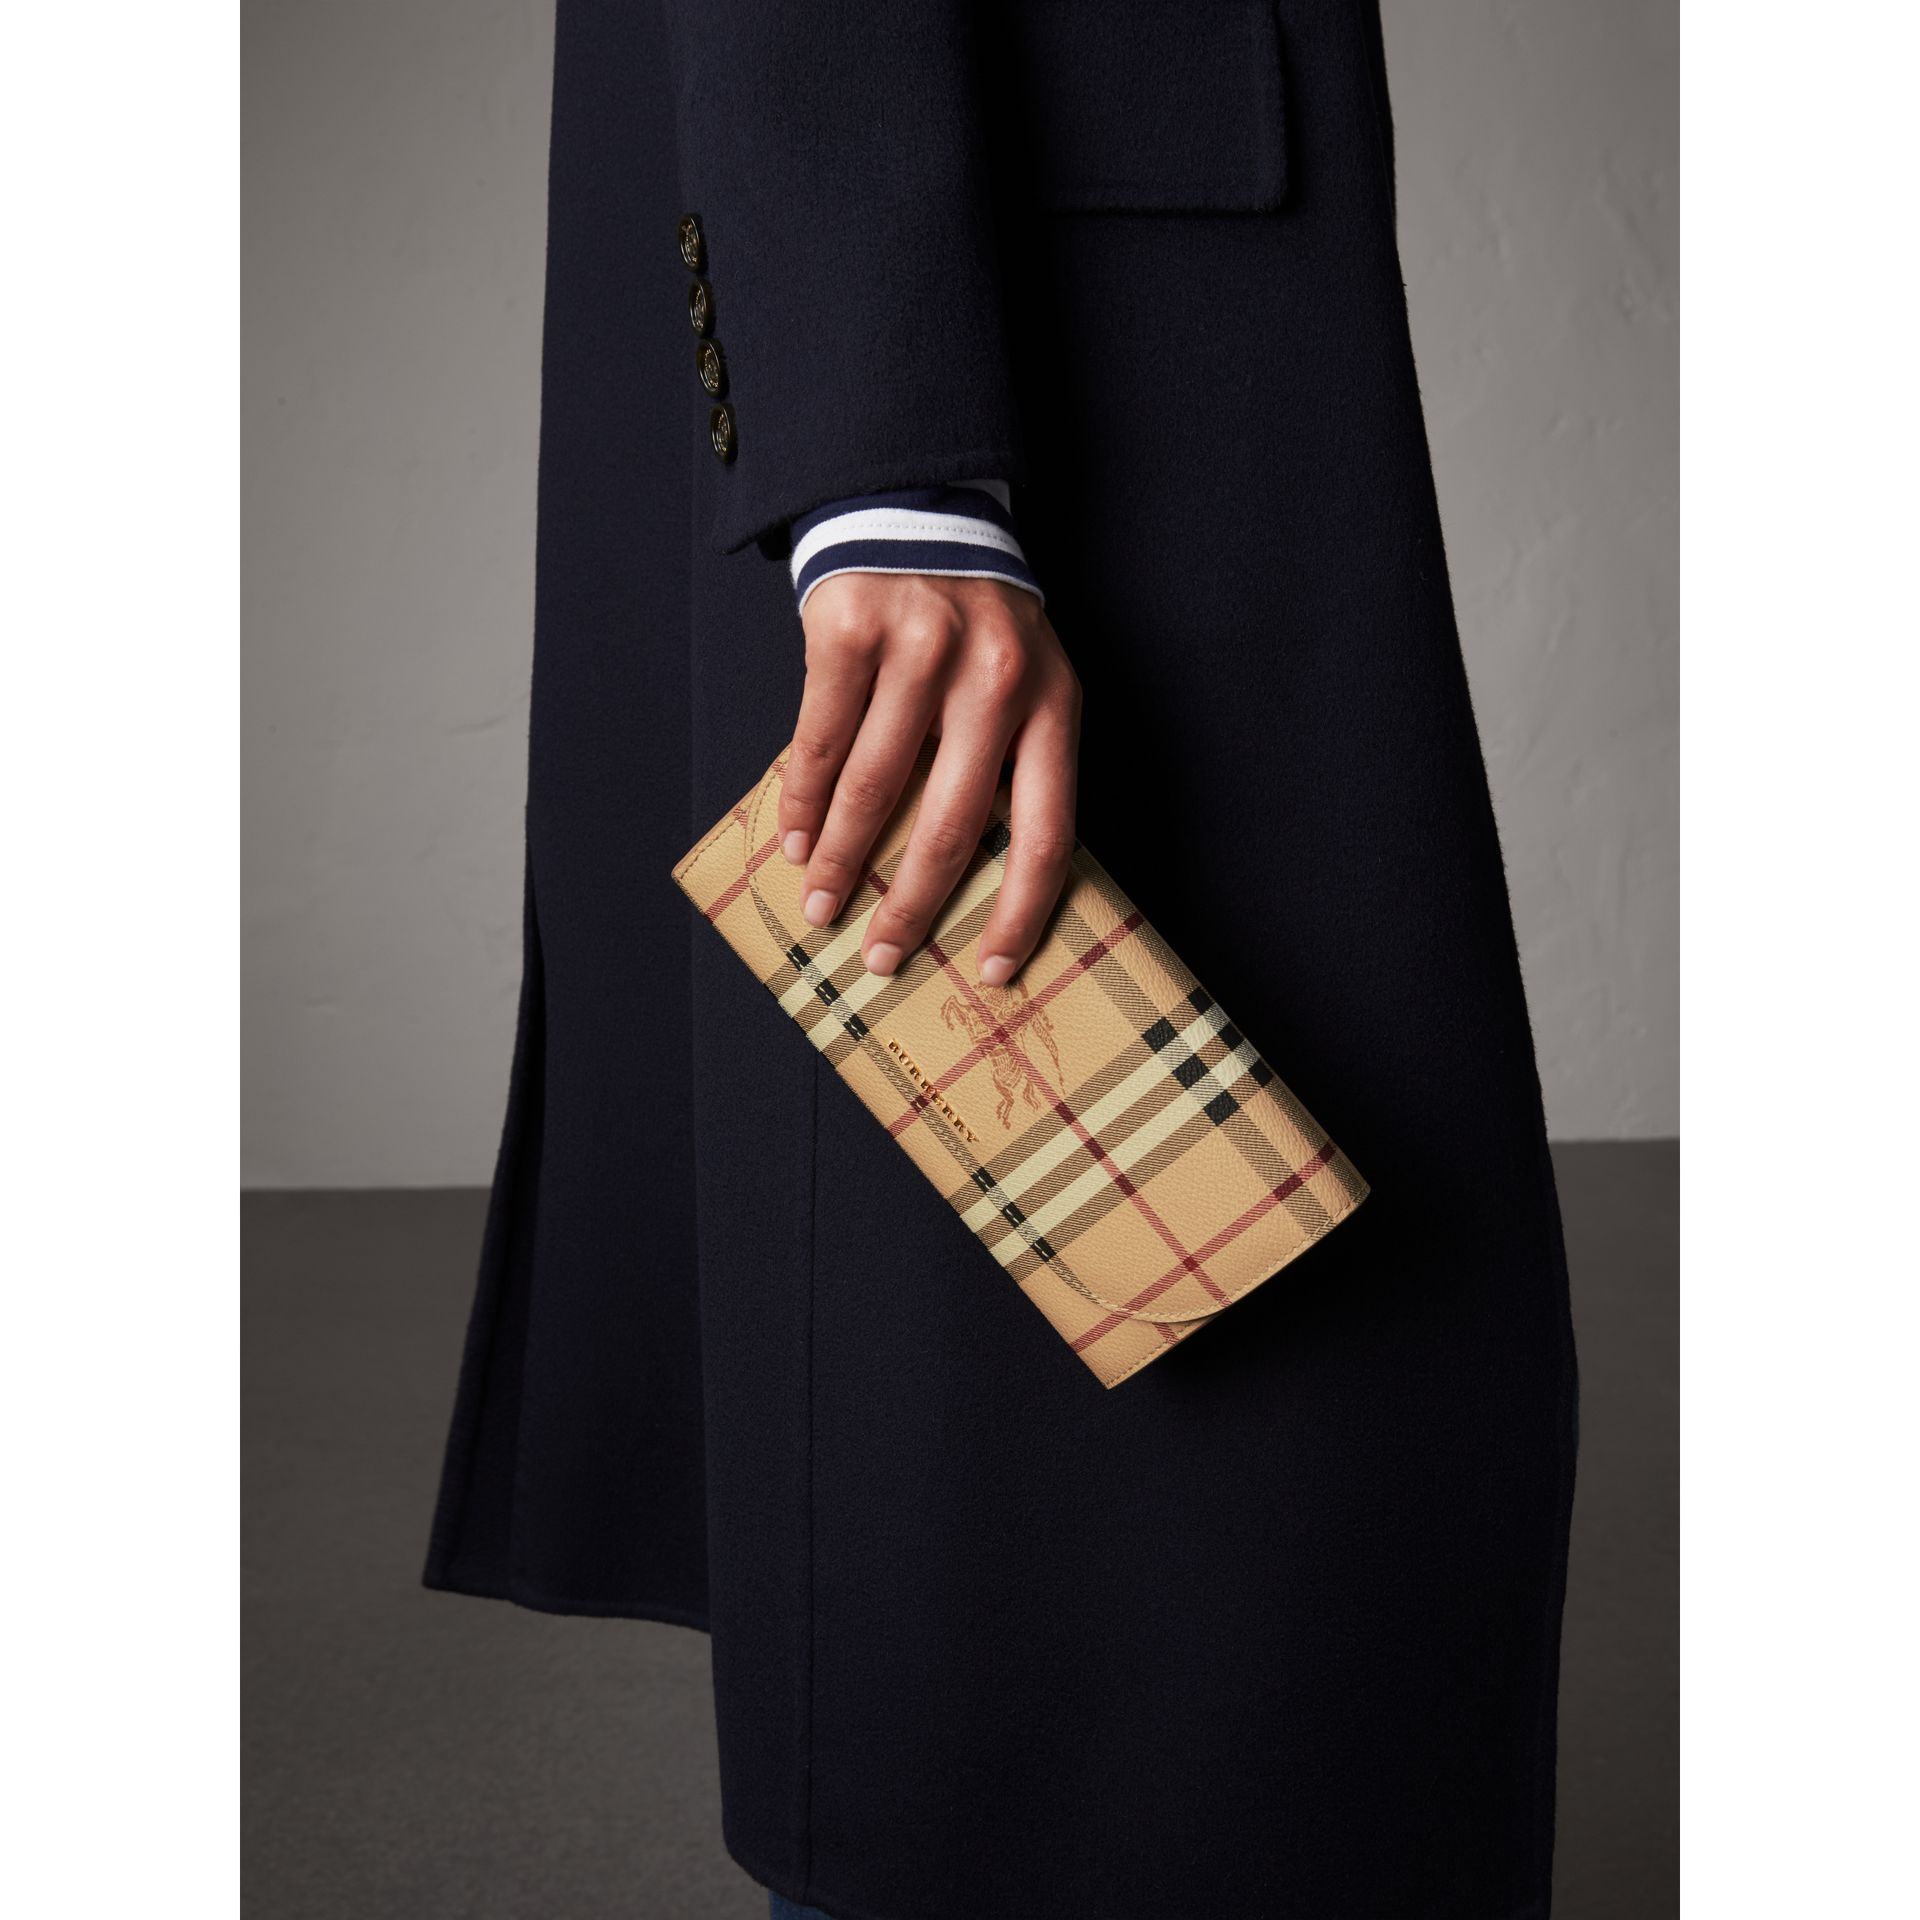 Leather Trim Haymarket Check Wallet with Chain in Mid Camel - Women | Burberry Australia - gallery image 2